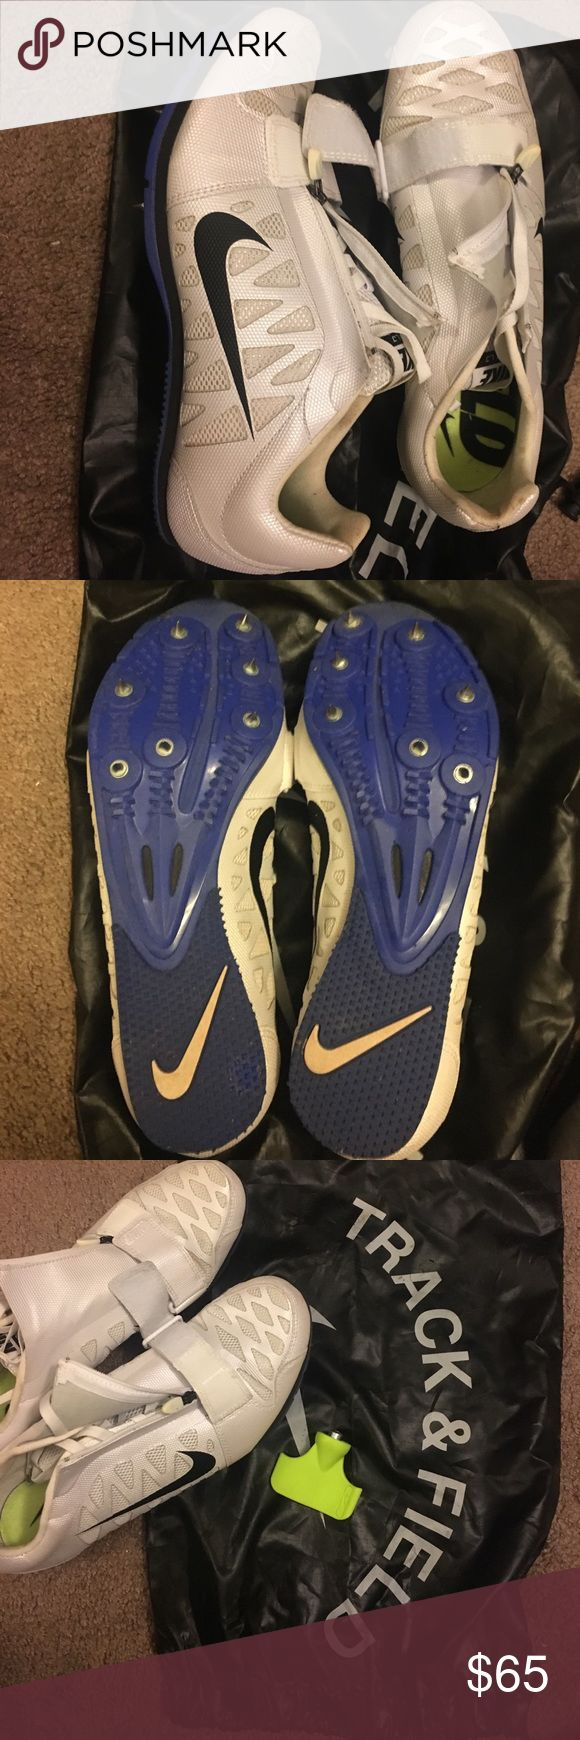 Long jump spikes These have been worn to 2 track meets. They are practically brand new. In great condition. Bag and tool to remove spikes are included. Nike Shoes Athletic Shoes